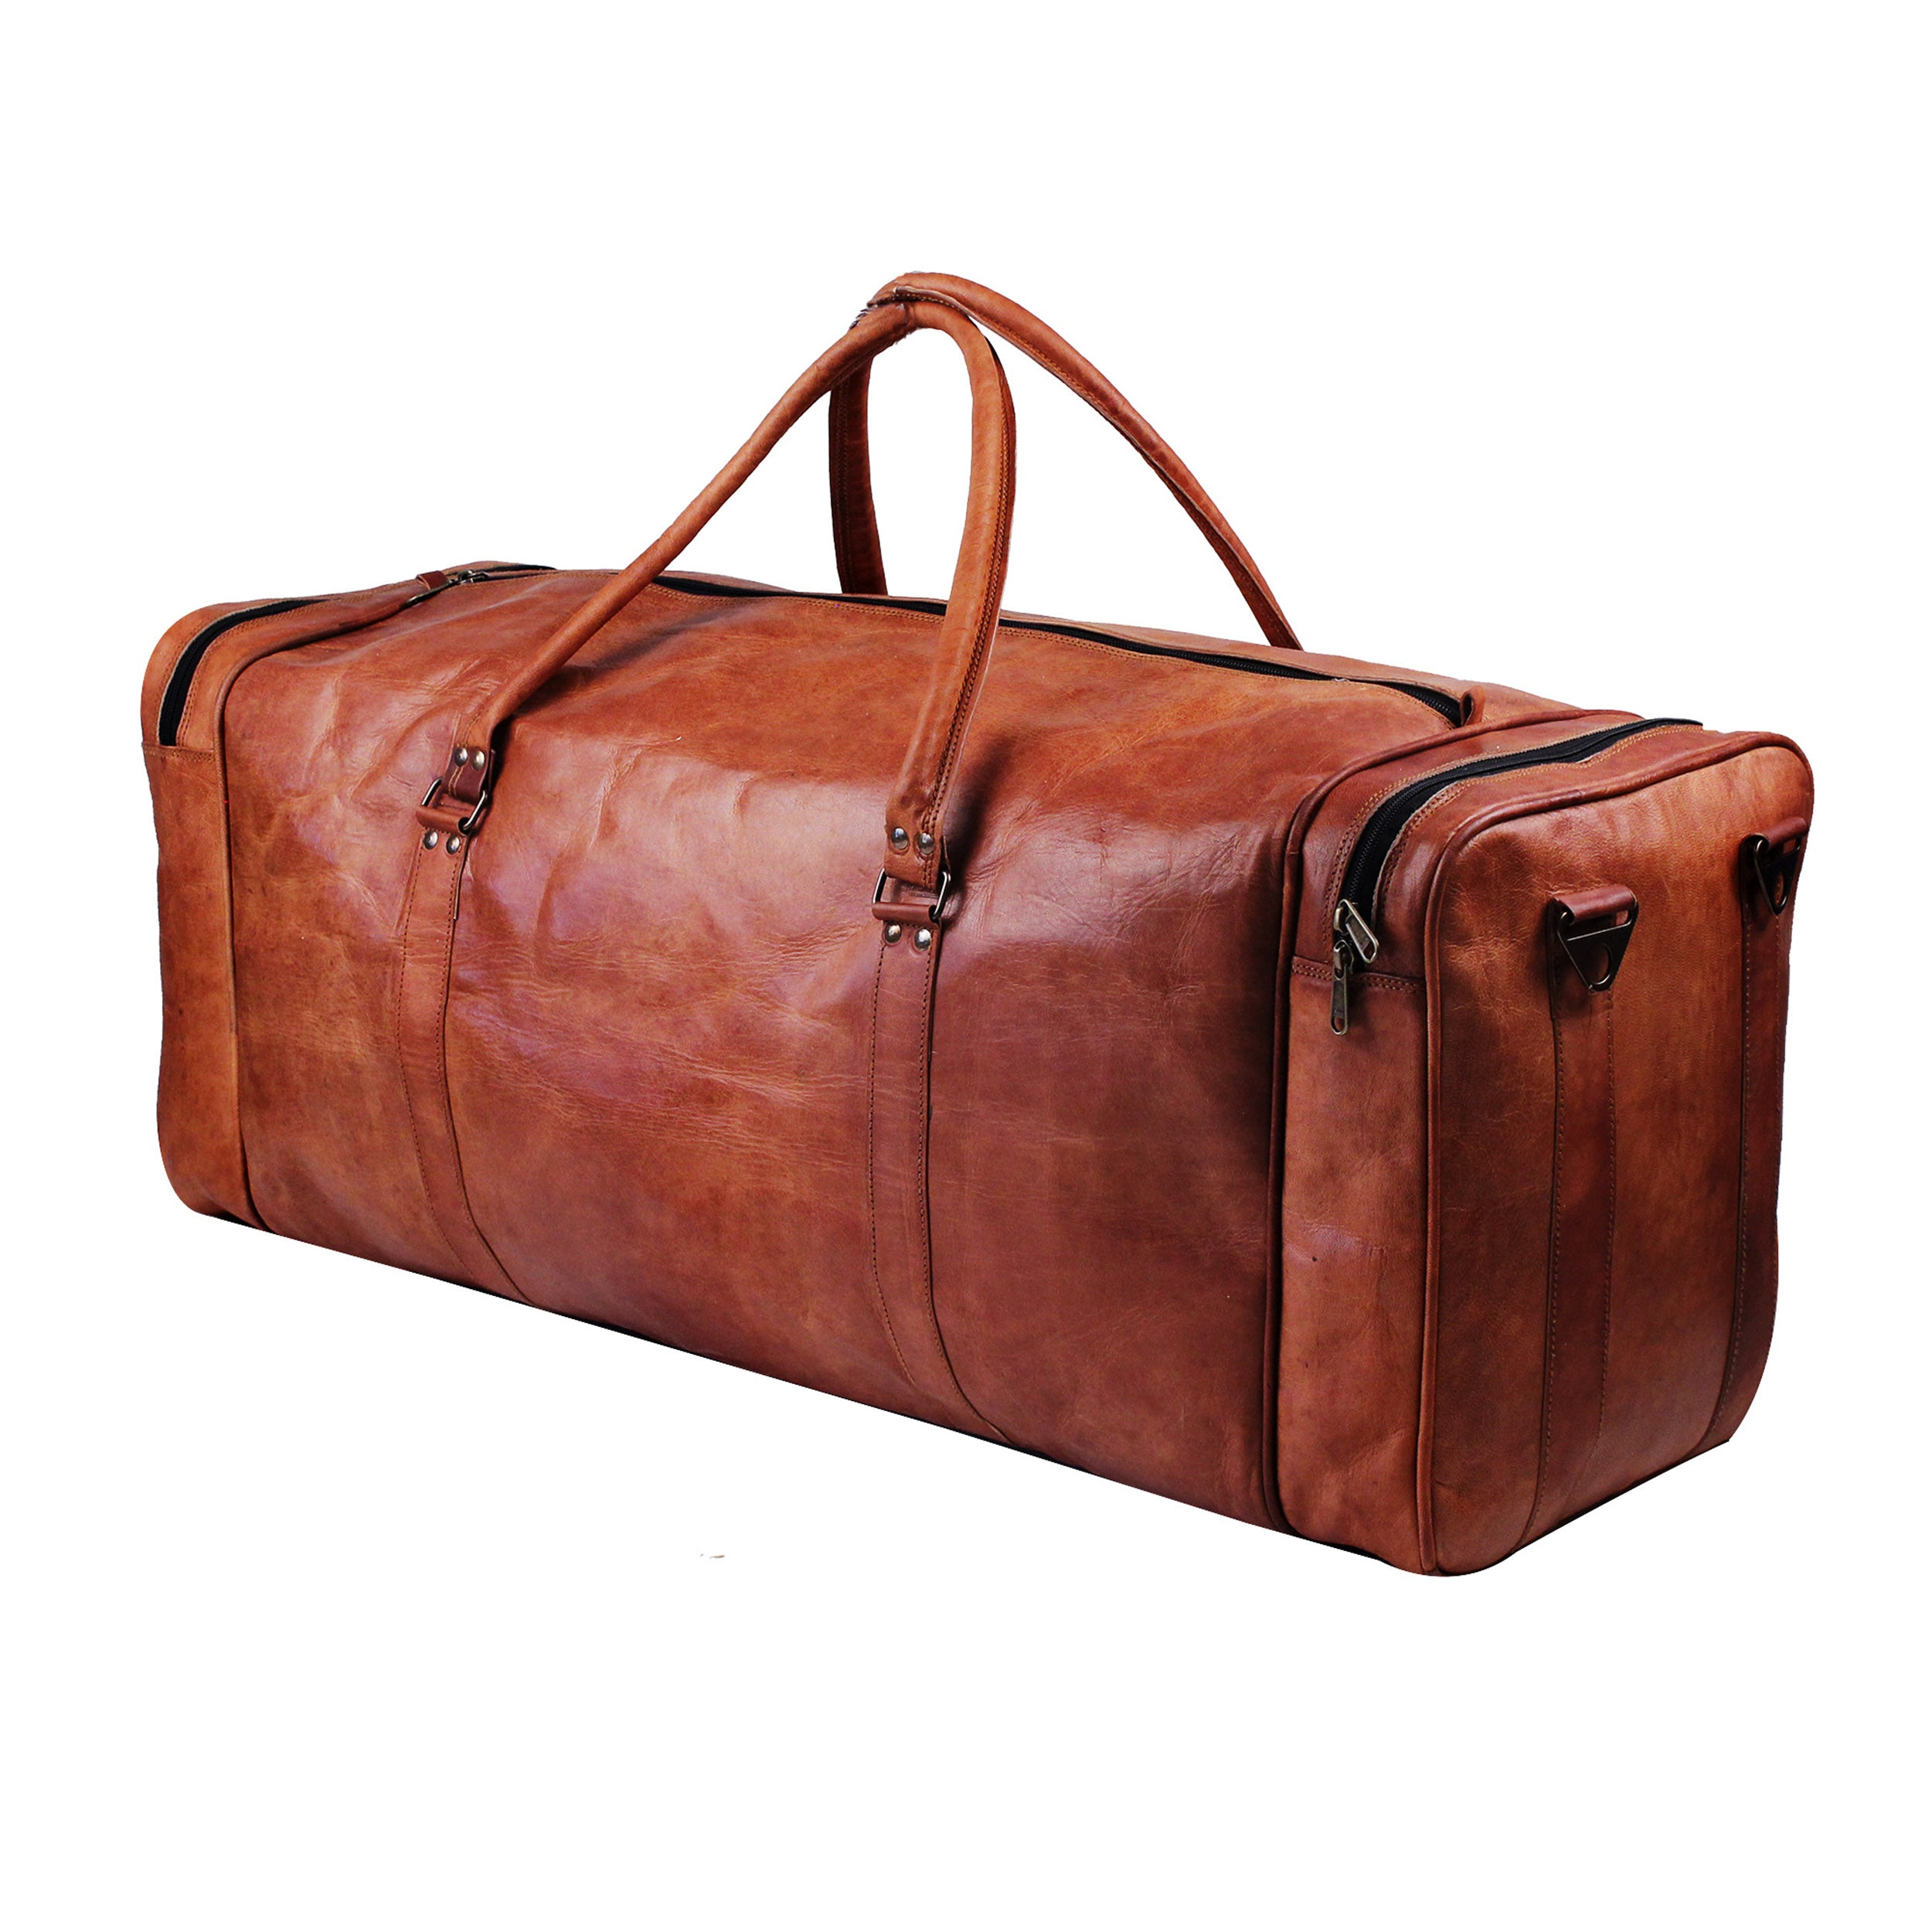 Full grain Brown Leather Square Duffle Bag